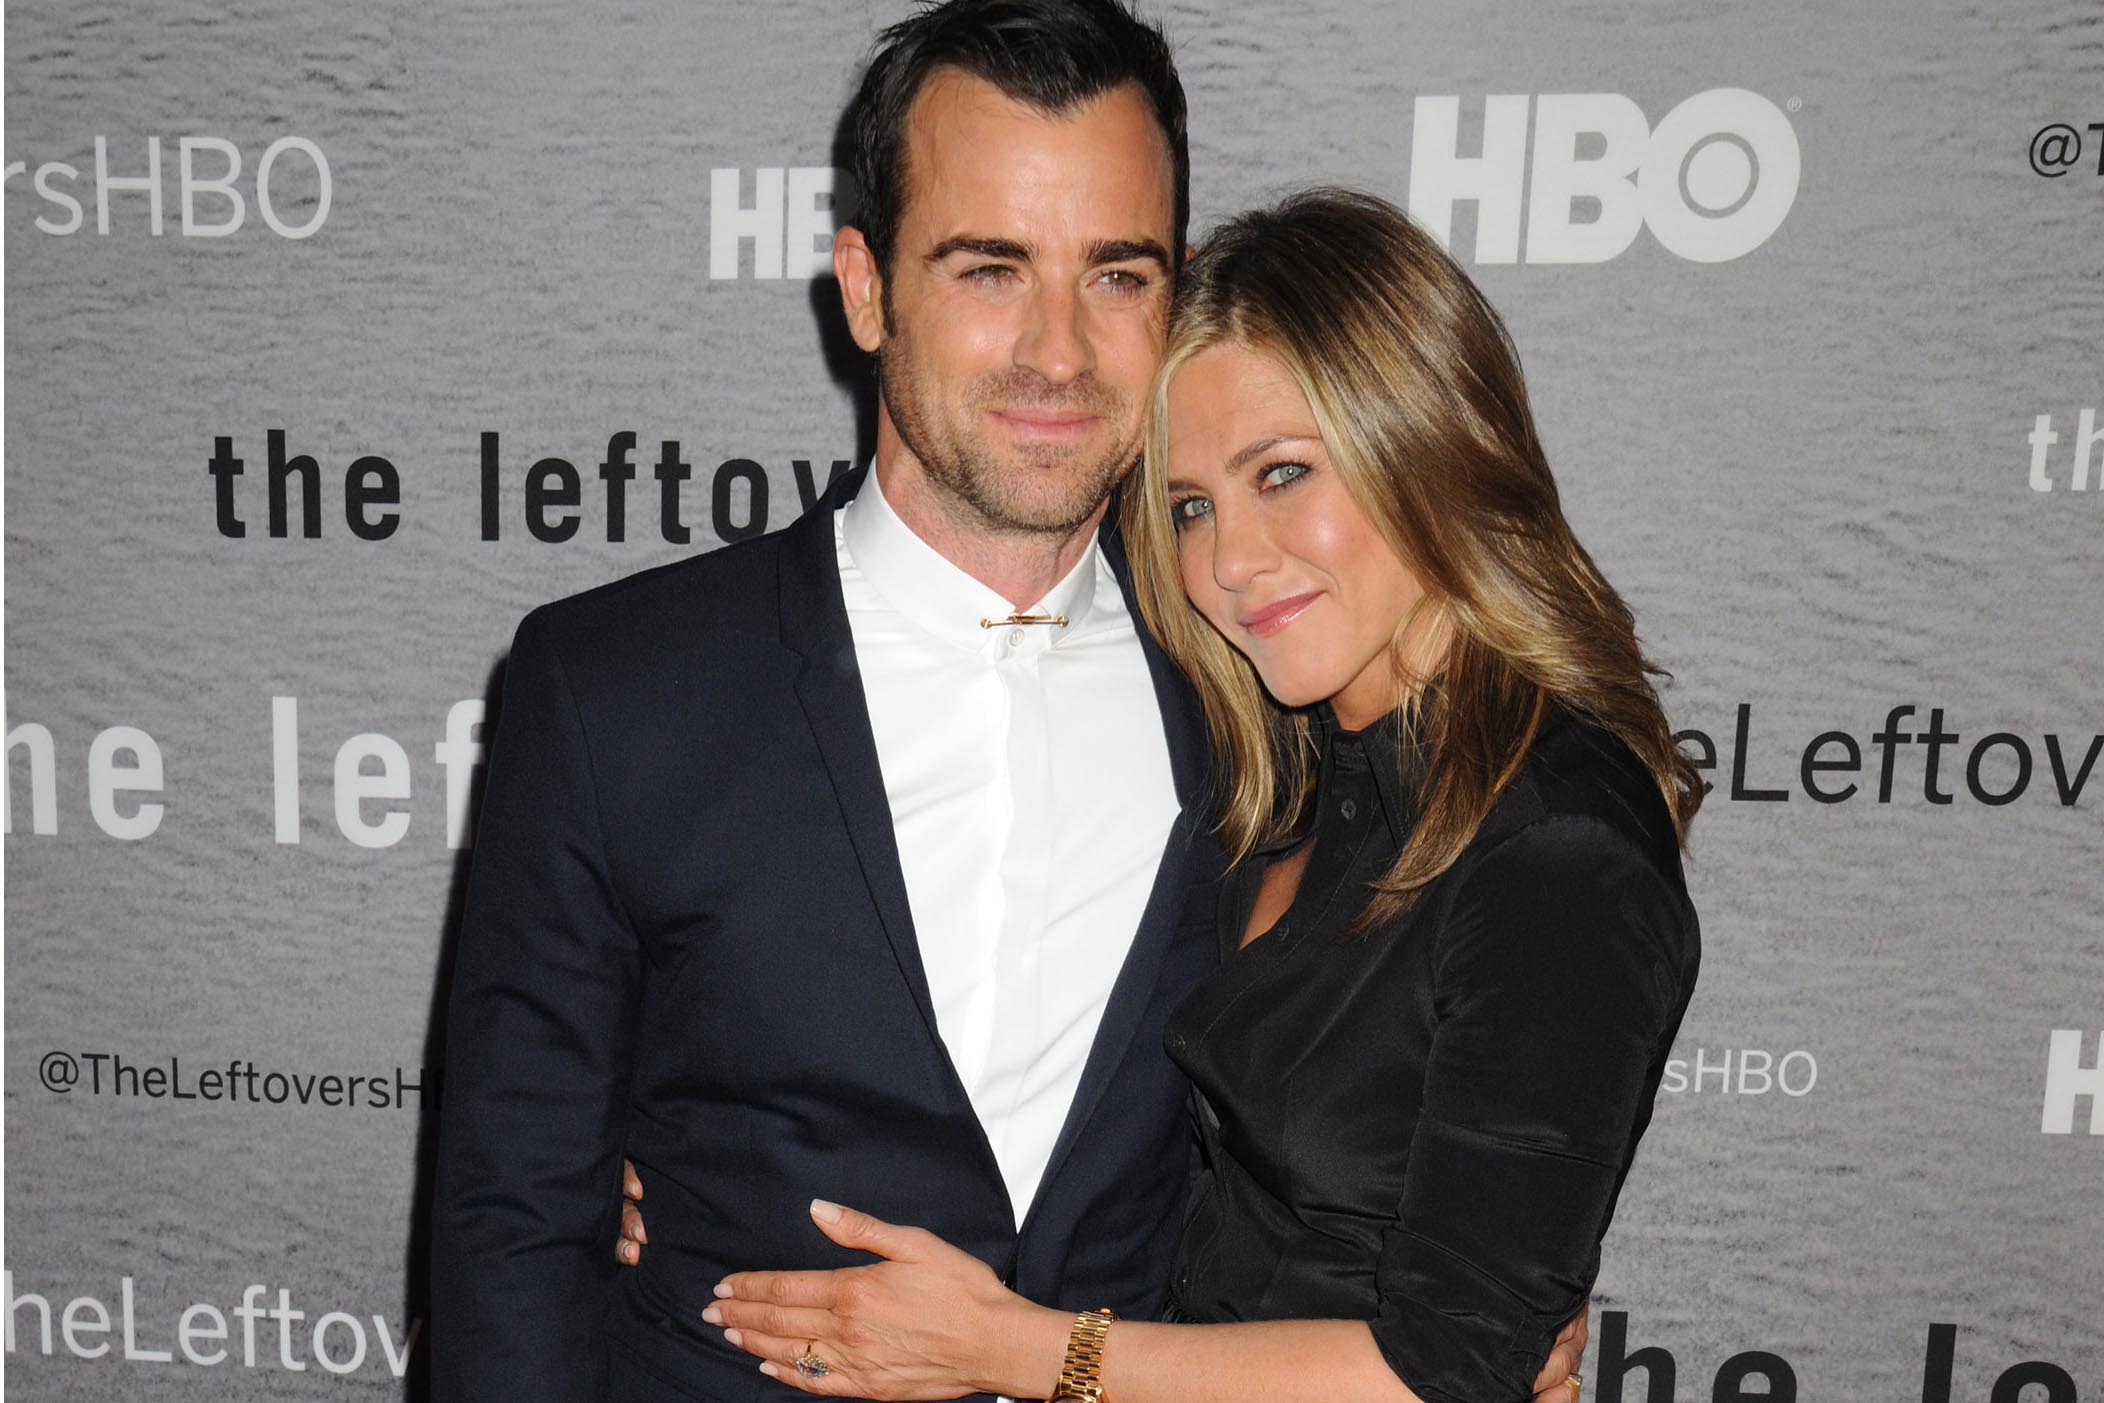 Jennifer Aniston & Justin Theroux Marriage Pics